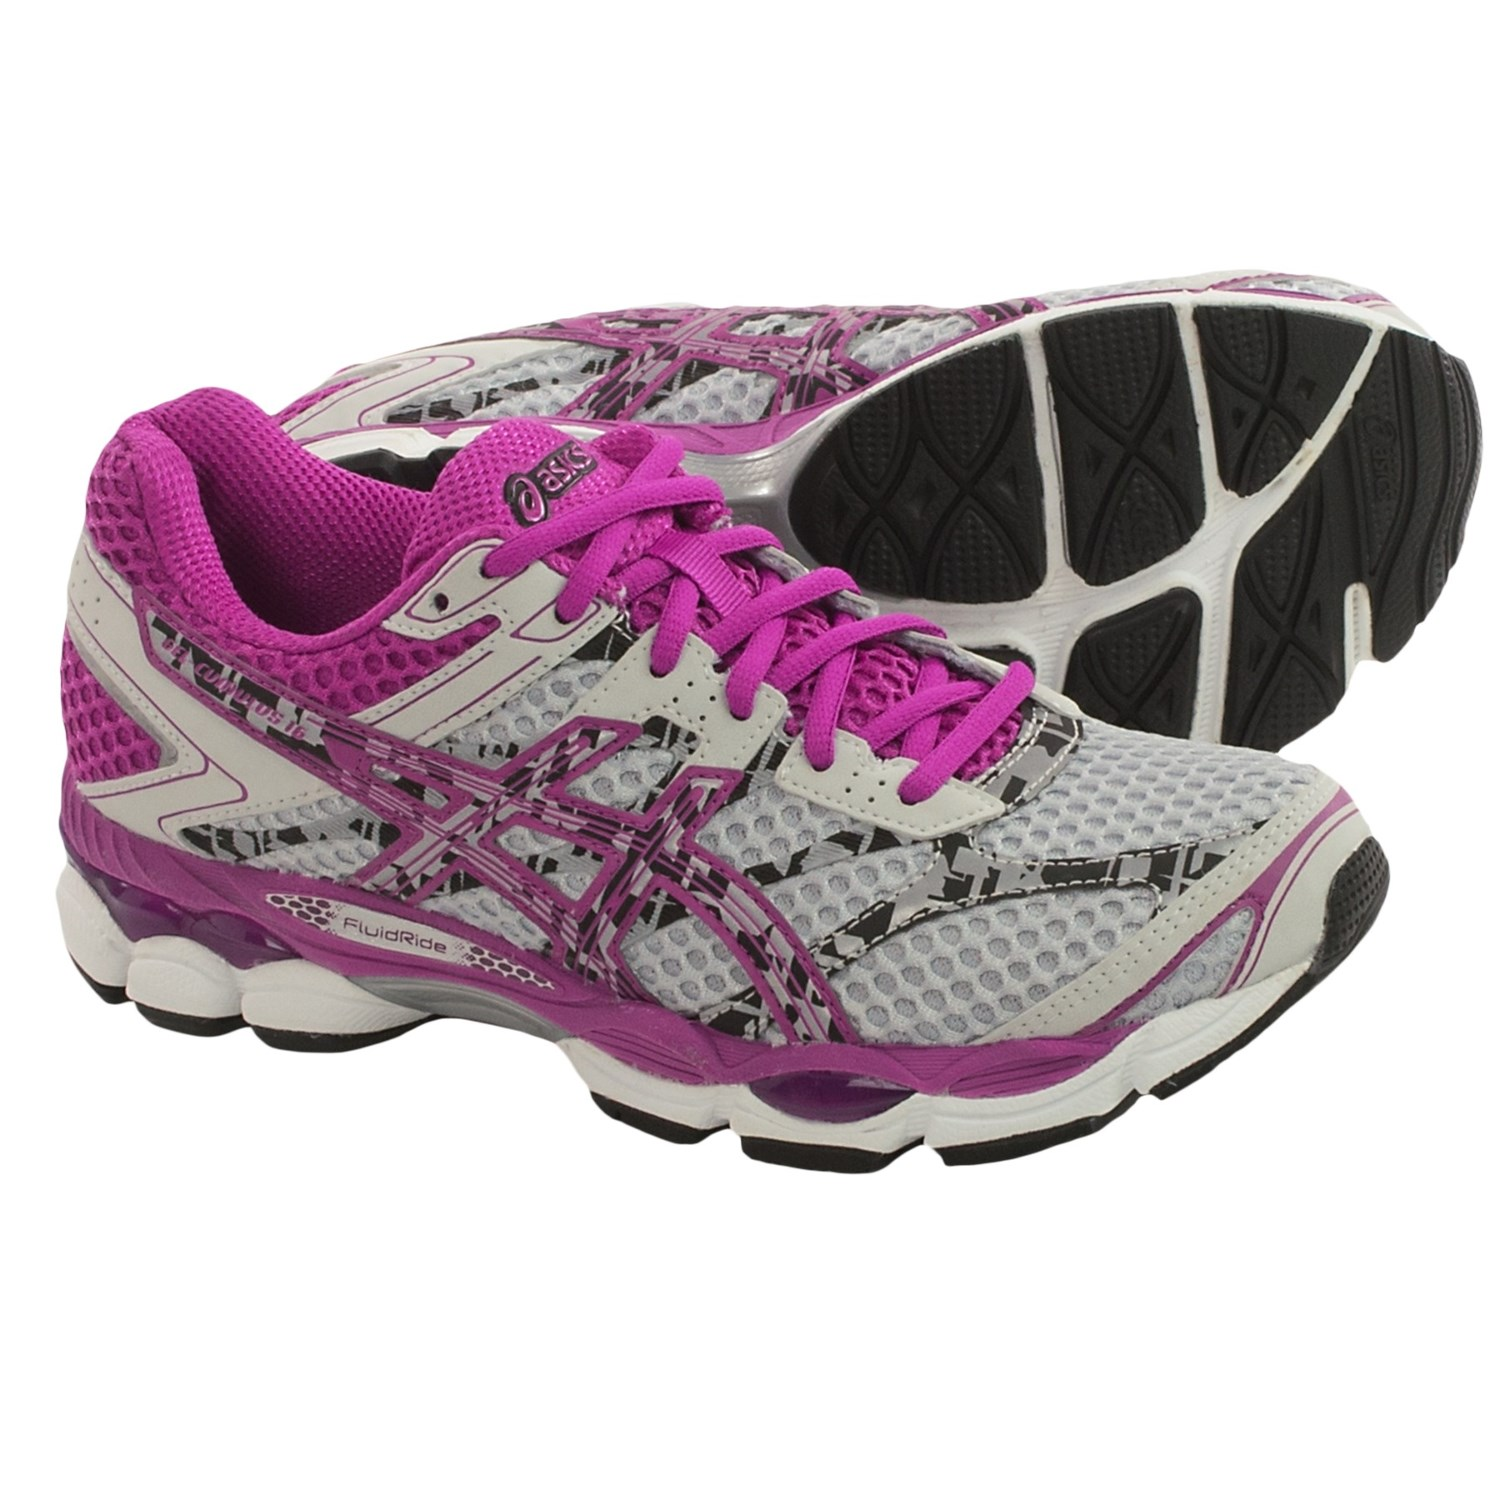 asics gel cumulus 16 lite show running shoes for women 9587t save 25. Black Bedroom Furniture Sets. Home Design Ideas